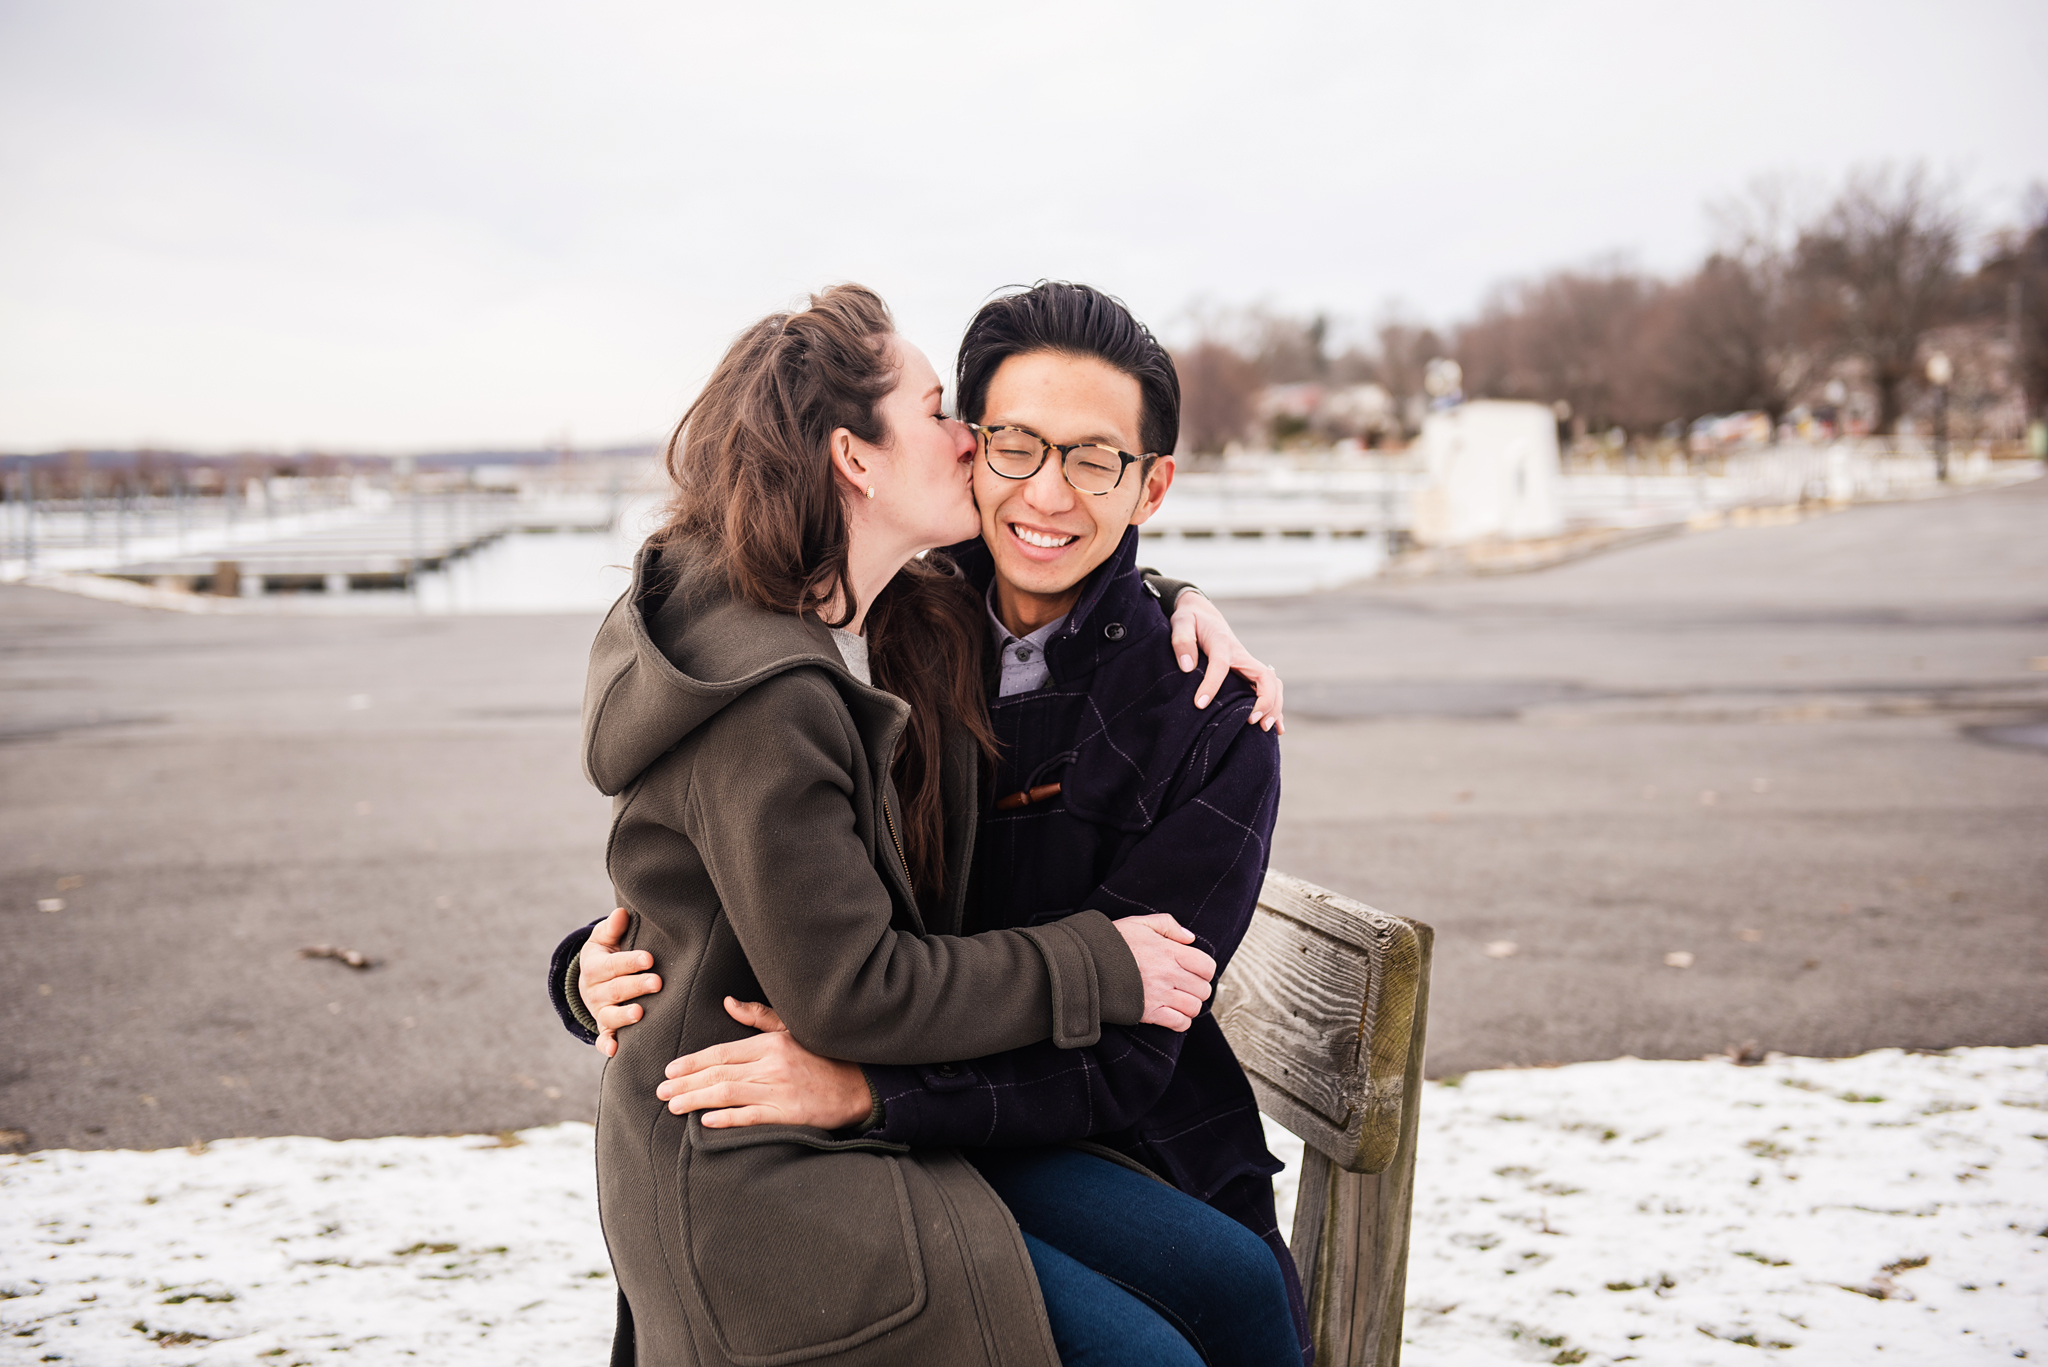 Onondaga_Lake_Park_Syracuse_Engagement_Session_JILL_STUDIO_Rochester_NY_Photographer_DSC_3219.jpg